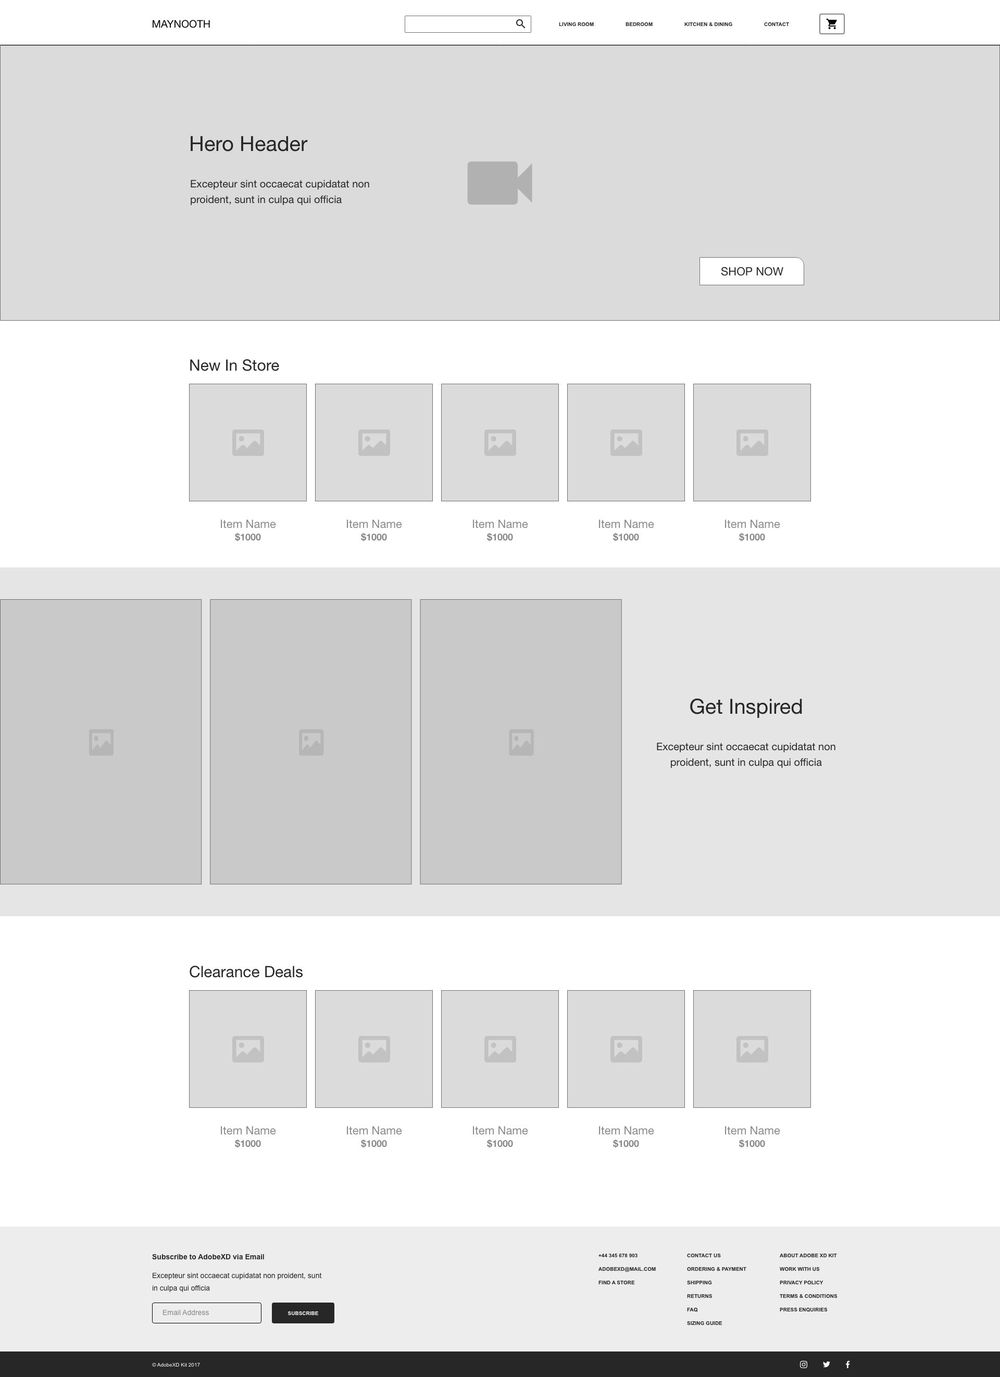 Maynooth Wireframe - Danielle V - image 1 - student project